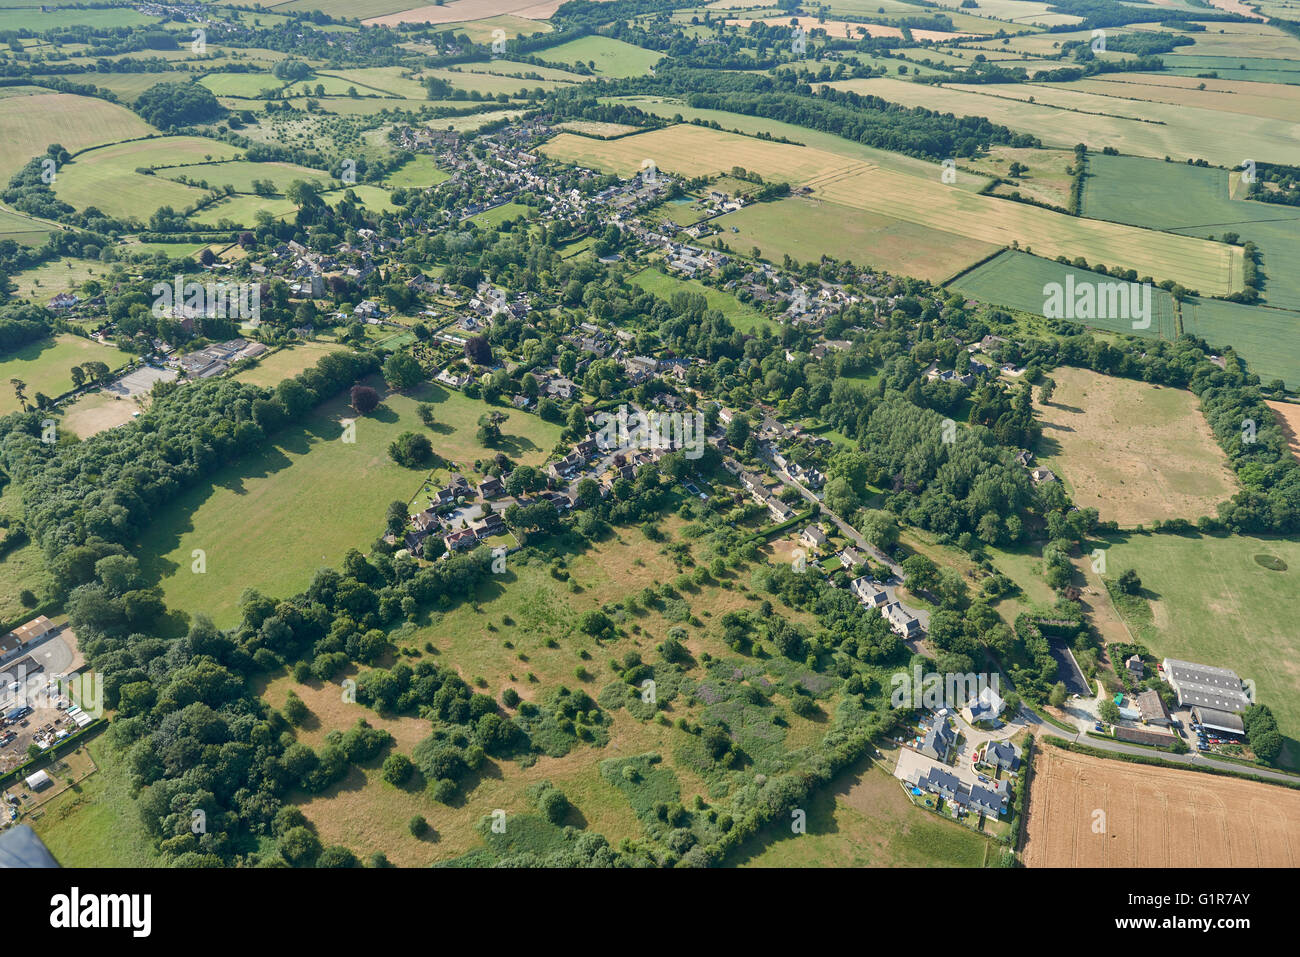 An aerial view of the village of Steeple Aston and surrounding Oxfordshire countryside - Stock Image